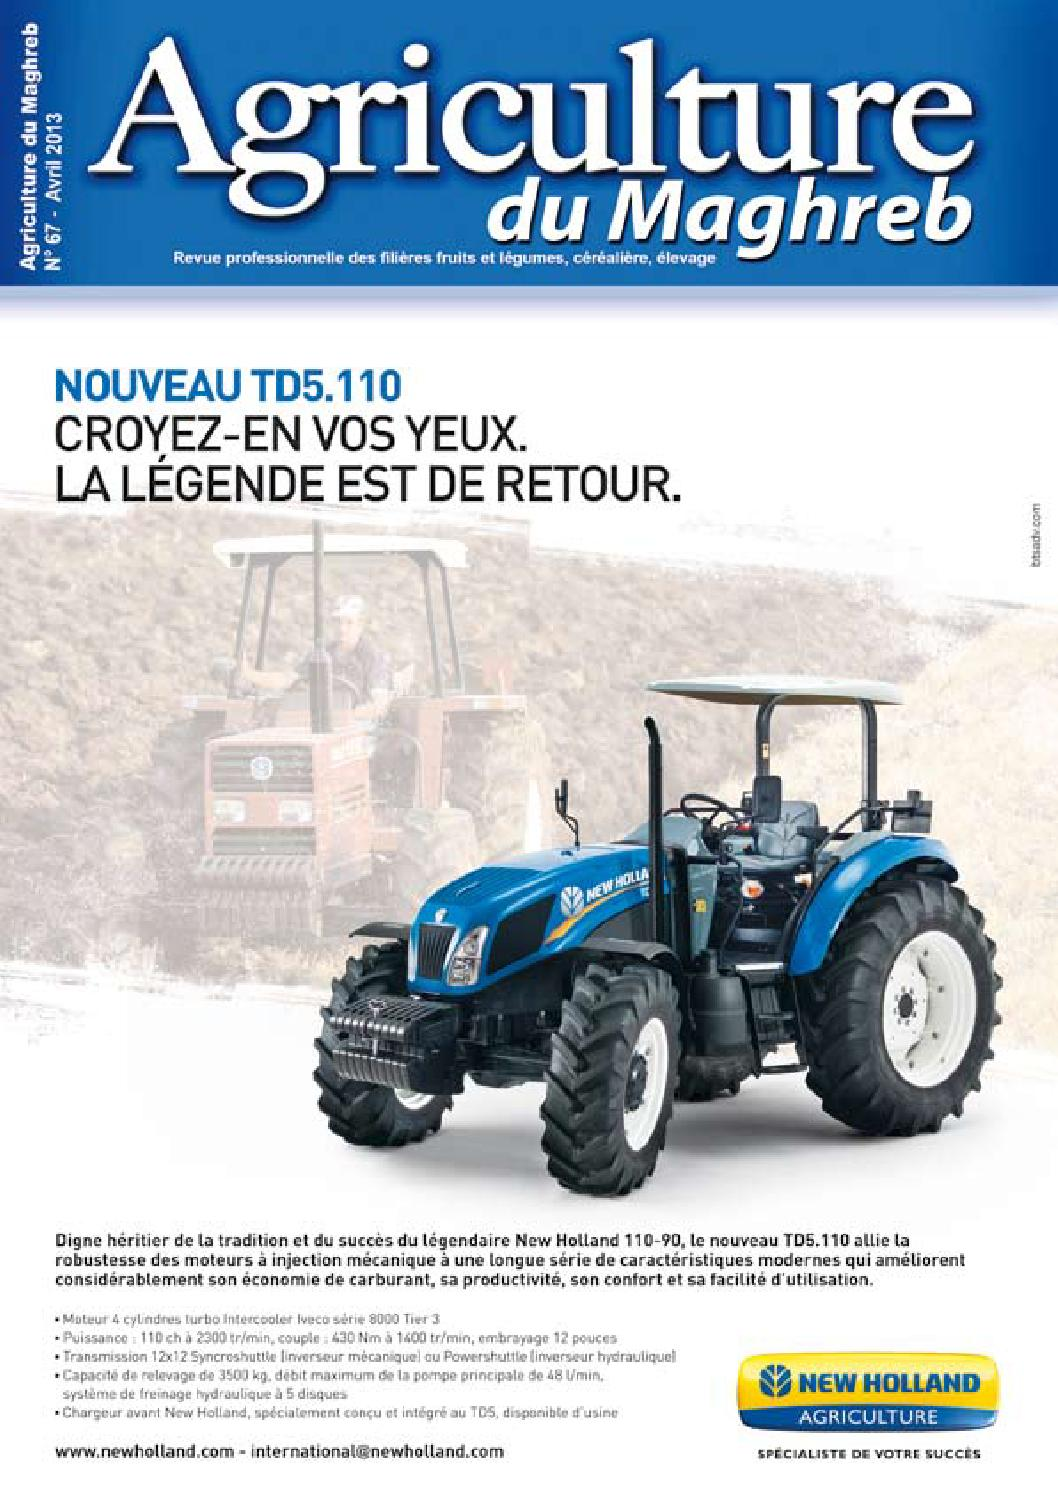 Agriculture du maghreb n°67 by AGRICULTURE MAGHREB - issuu